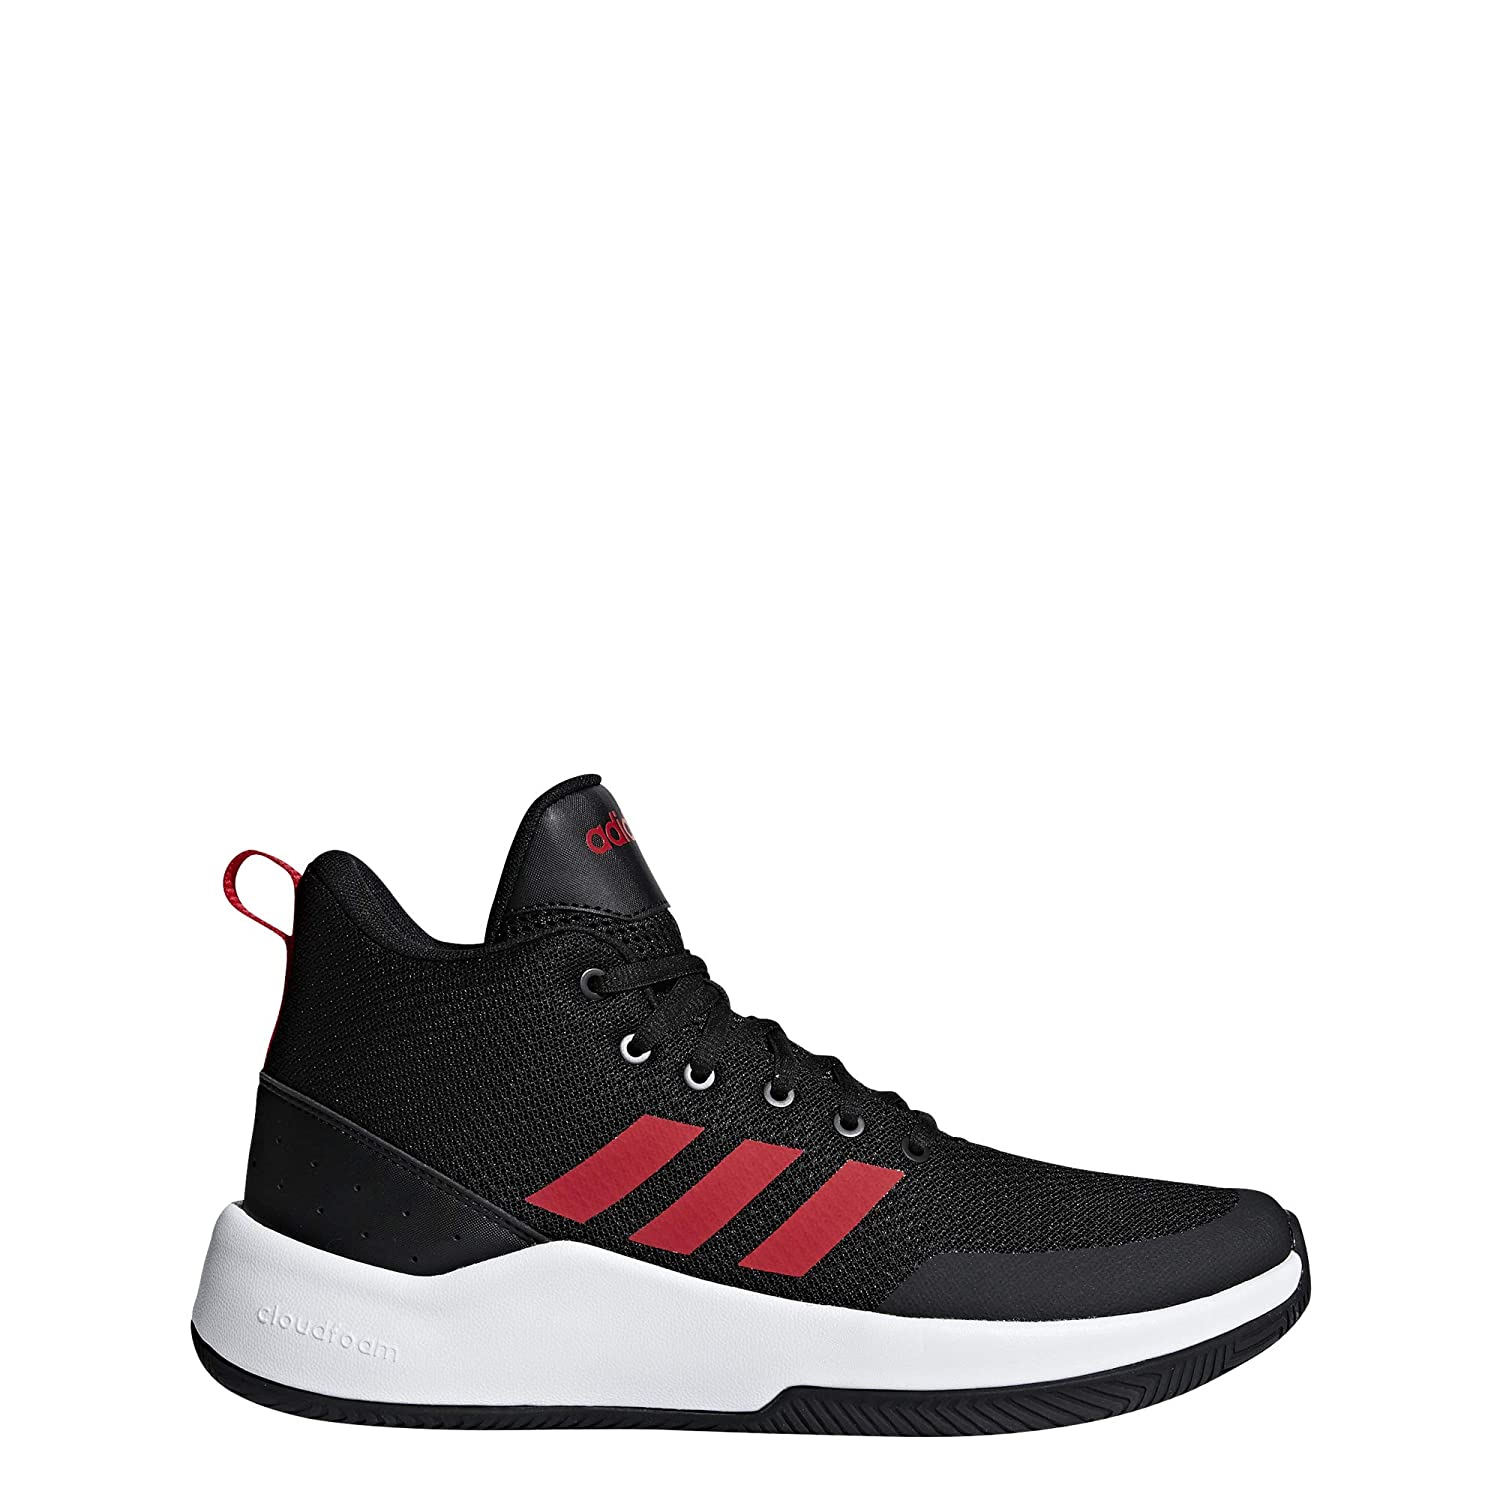 580563a945962d adidas Men s Speed End2end Basketball Shoes  Amazon.co.uk  Shoes   Bags